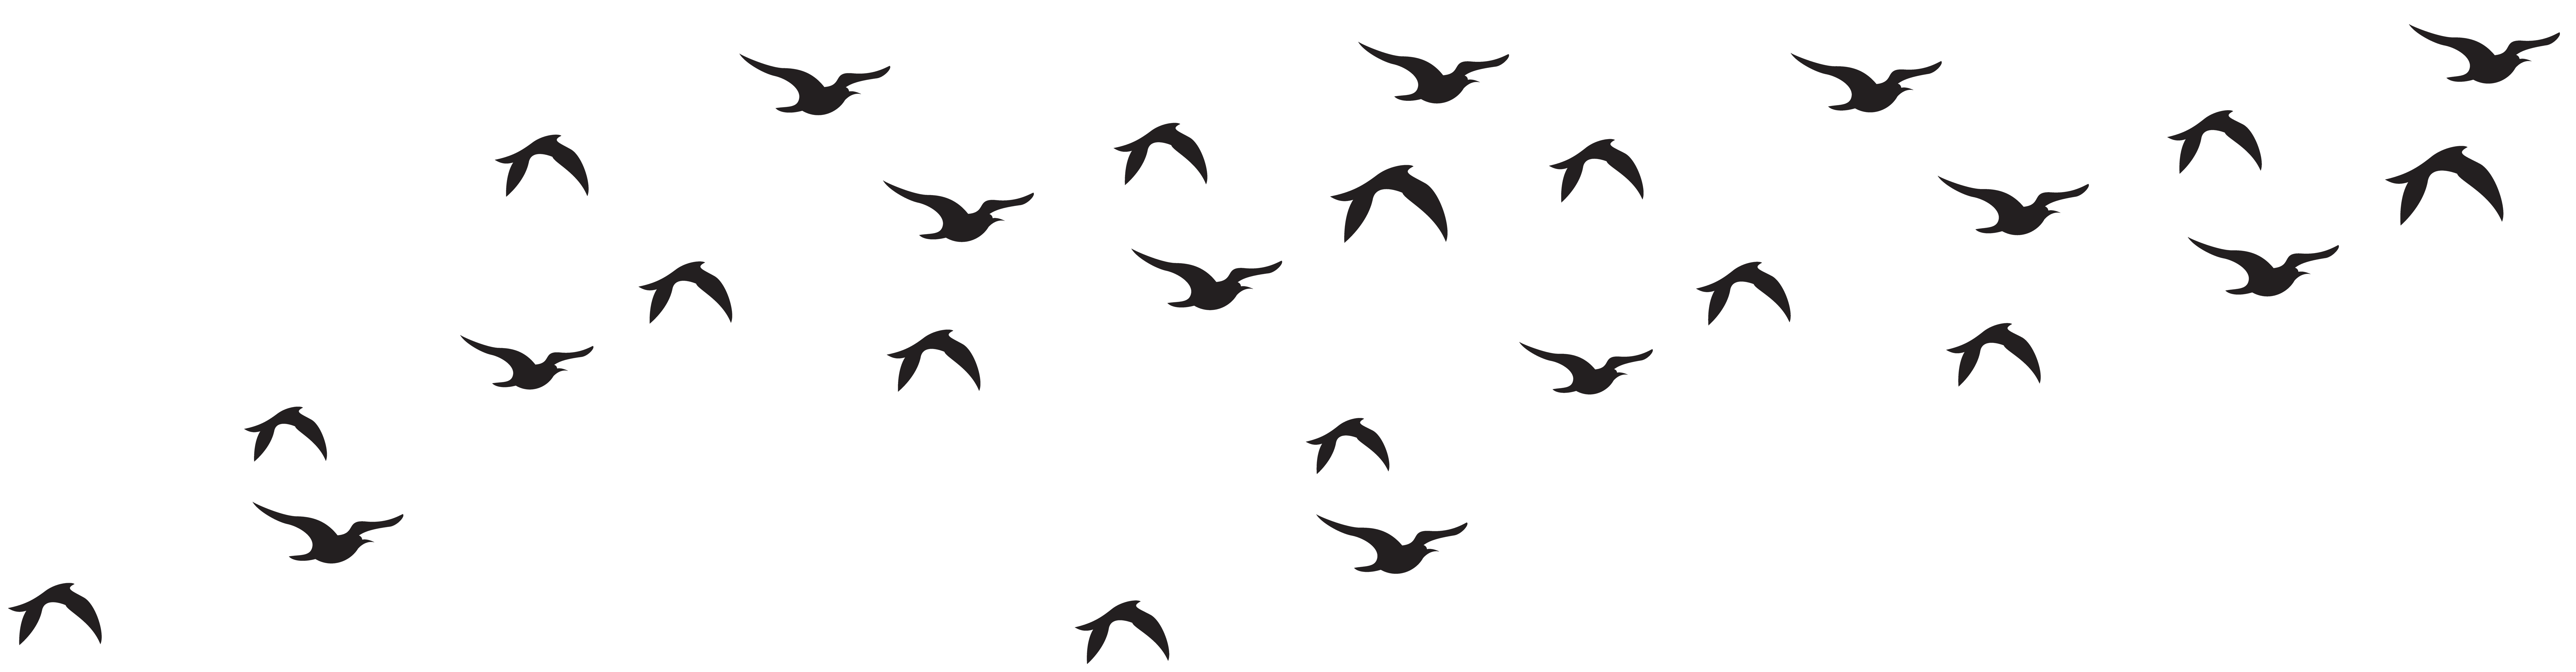 flock birds png transparent flock birds images #9548